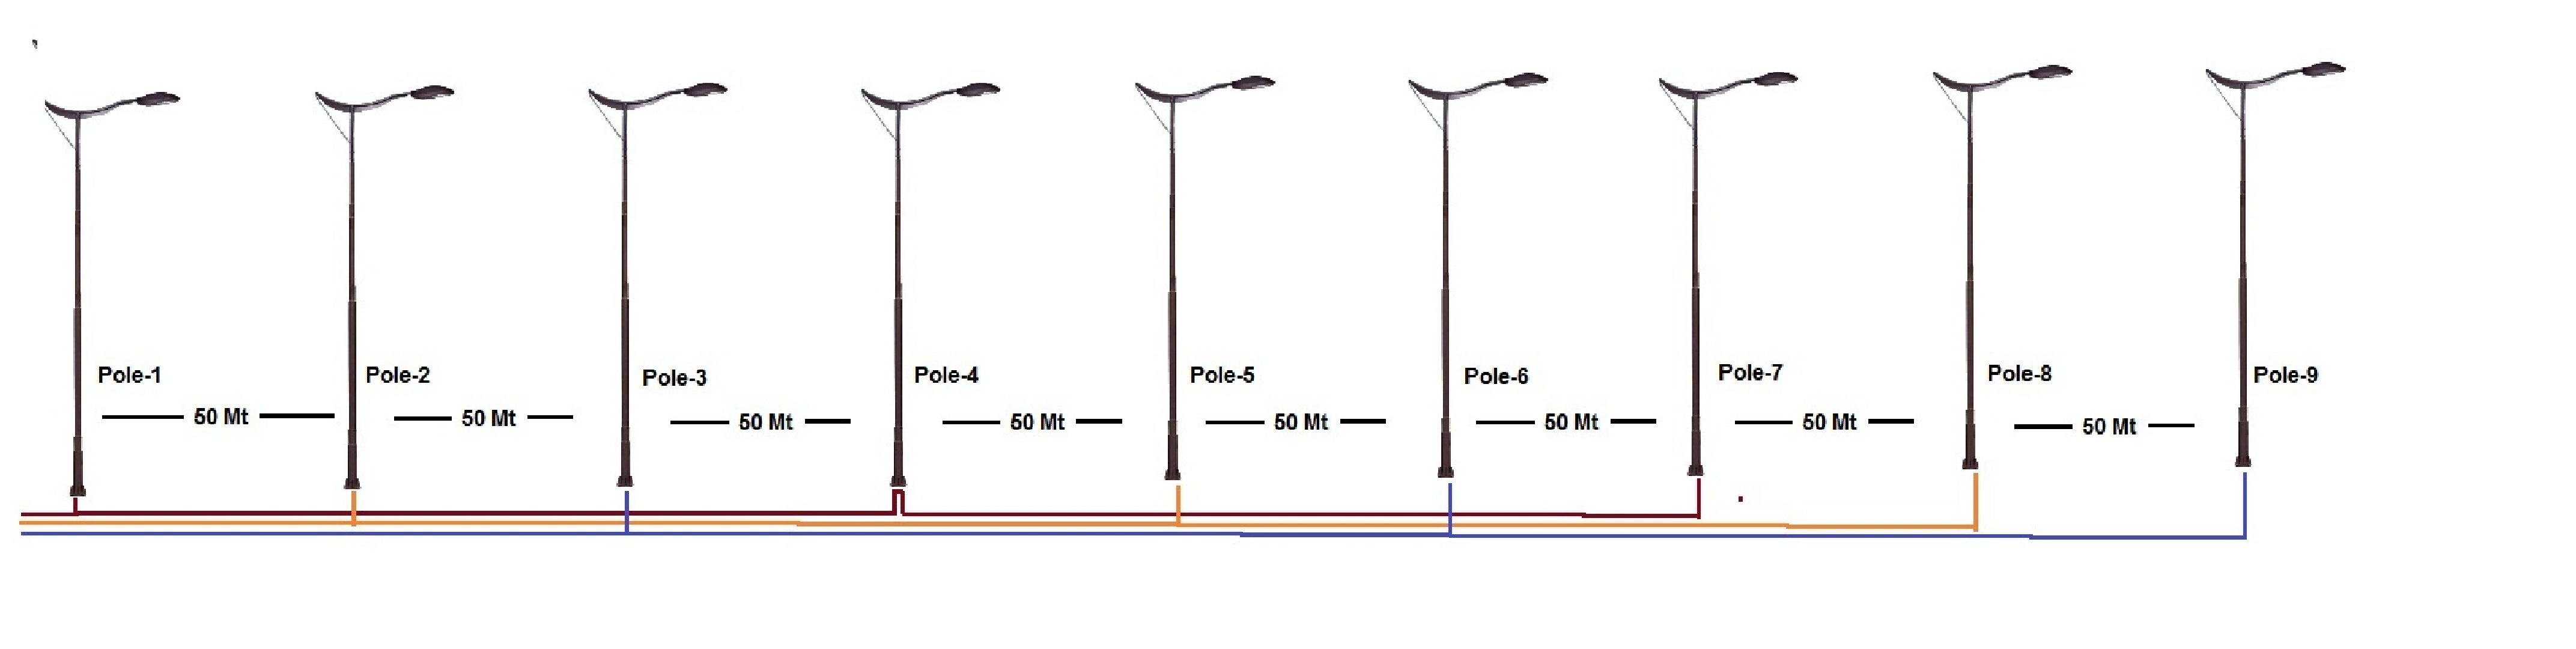 Lighting Distribution Single Line Diagram Electrical Wiring Calculate Cable Voltage Drop For Street Light Pole Example